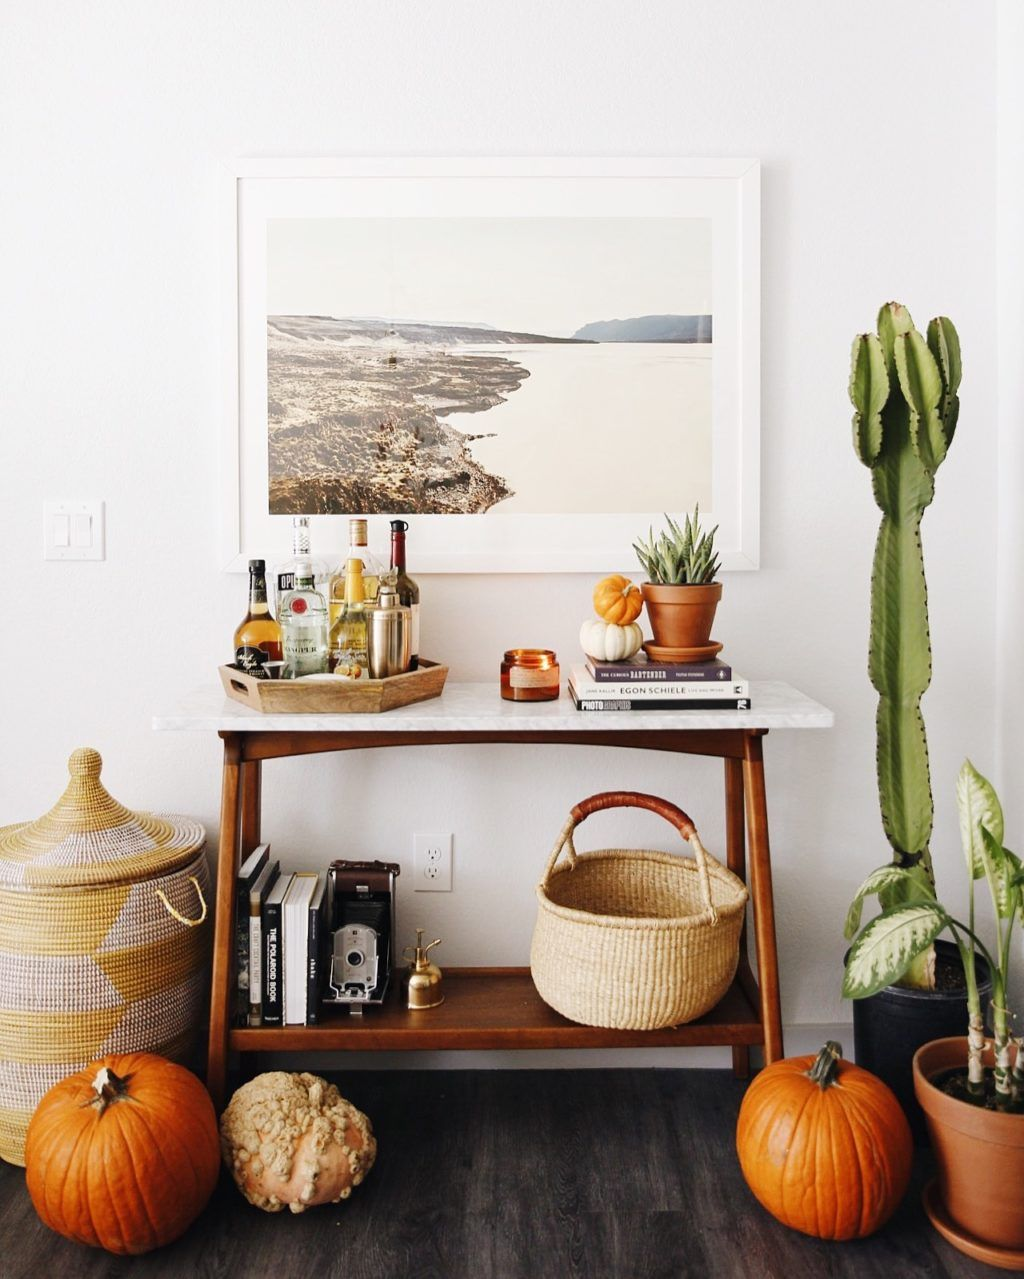 Home Fall Decorating Ideas 2840: Mid-century Style Home Decor